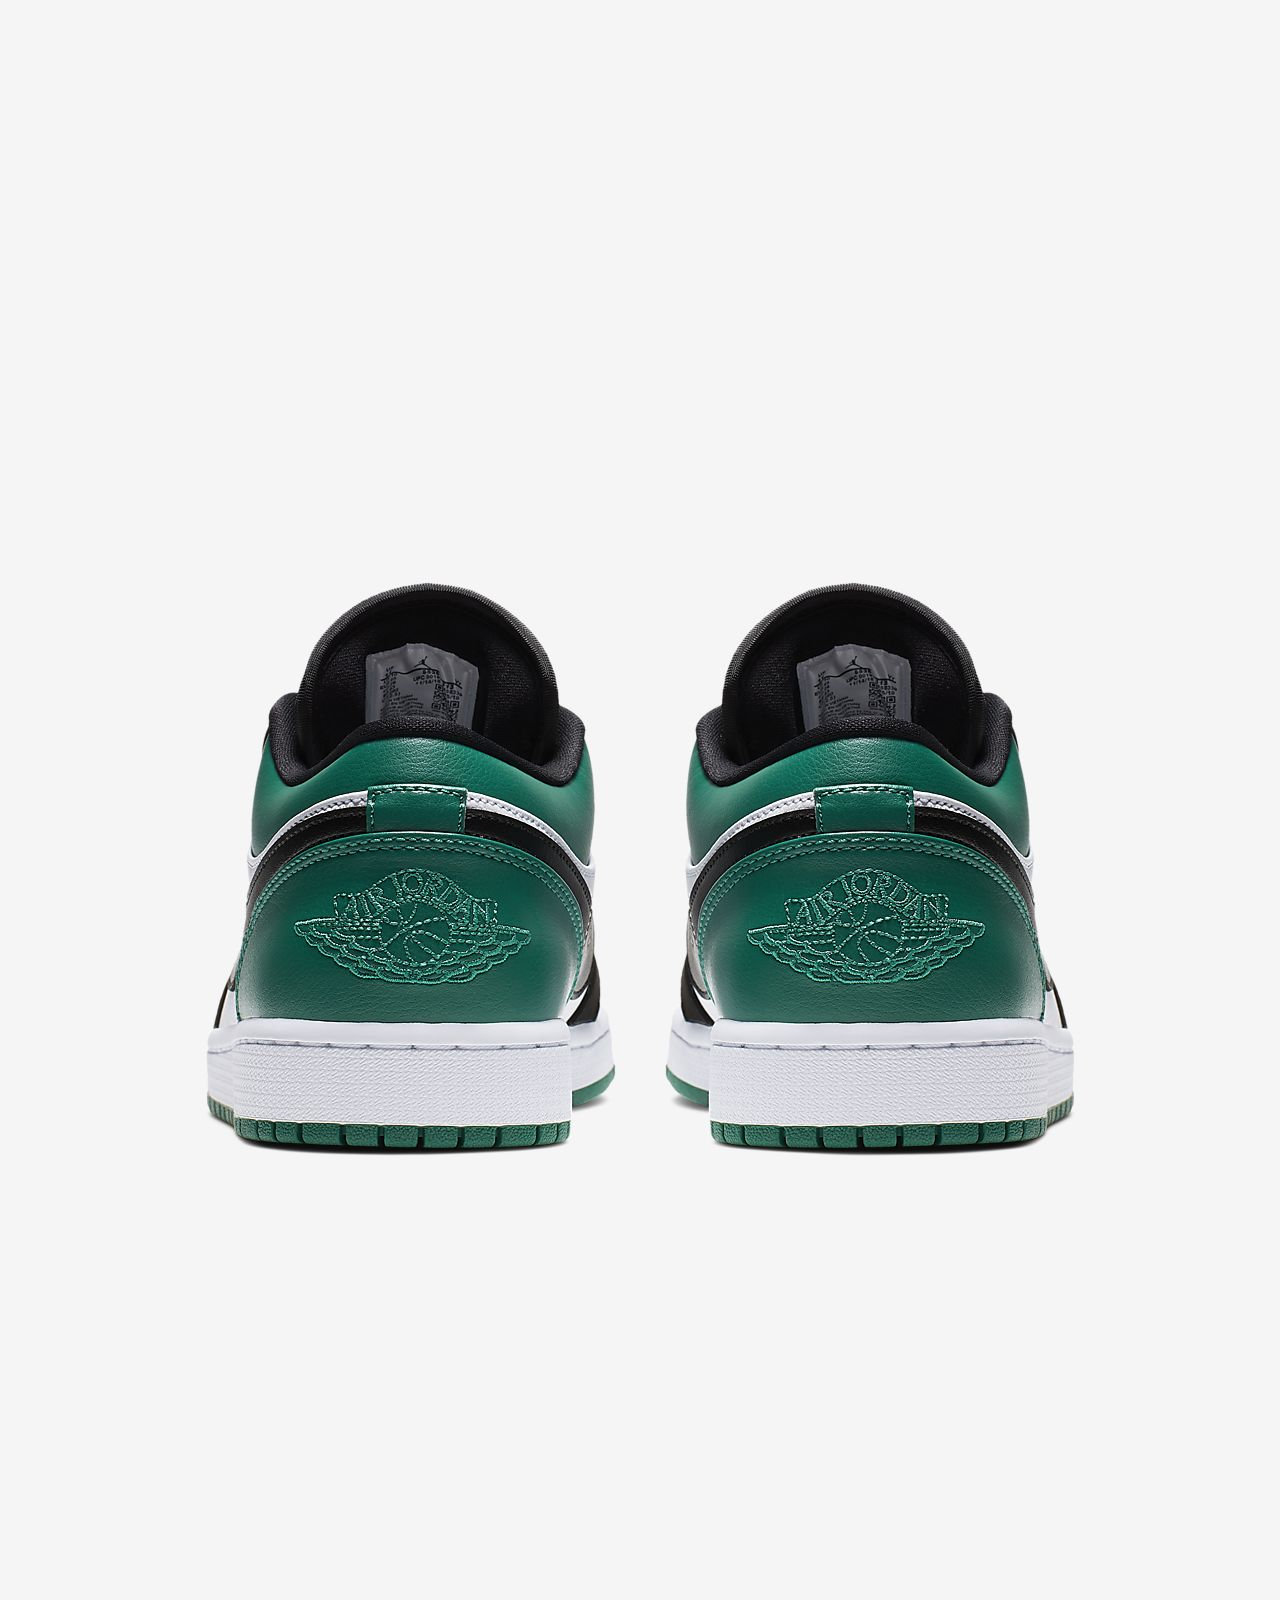 22c90d59df8 Air Jordan 1 Low Men's Shoe. Nike.com